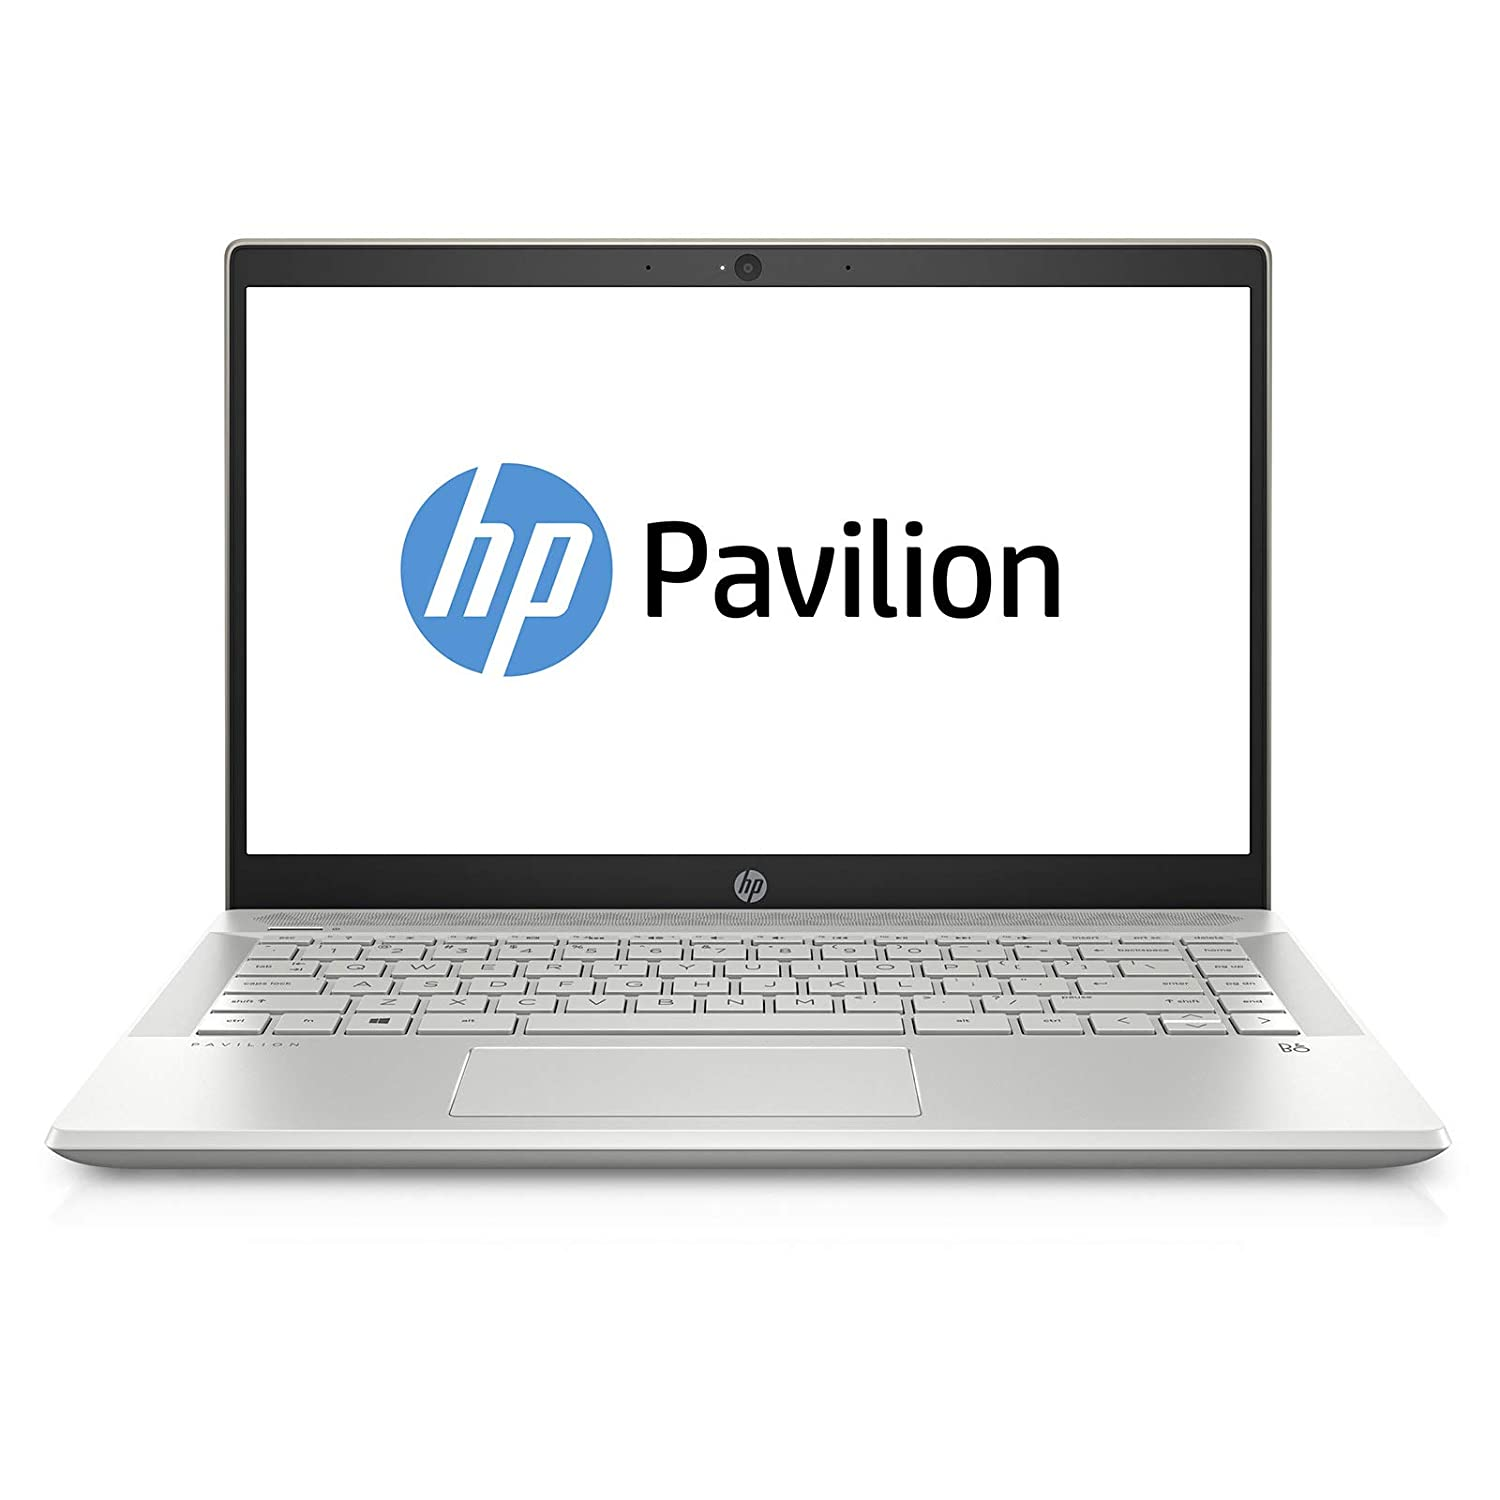 HP Pavilion 14-ce0001ne Laptop, Intel Core i7